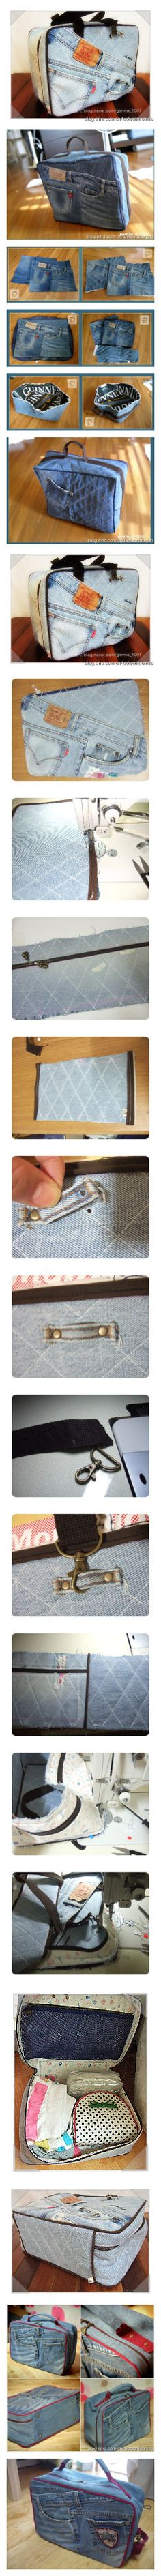 Three denim travel bag tutorials, reused denim